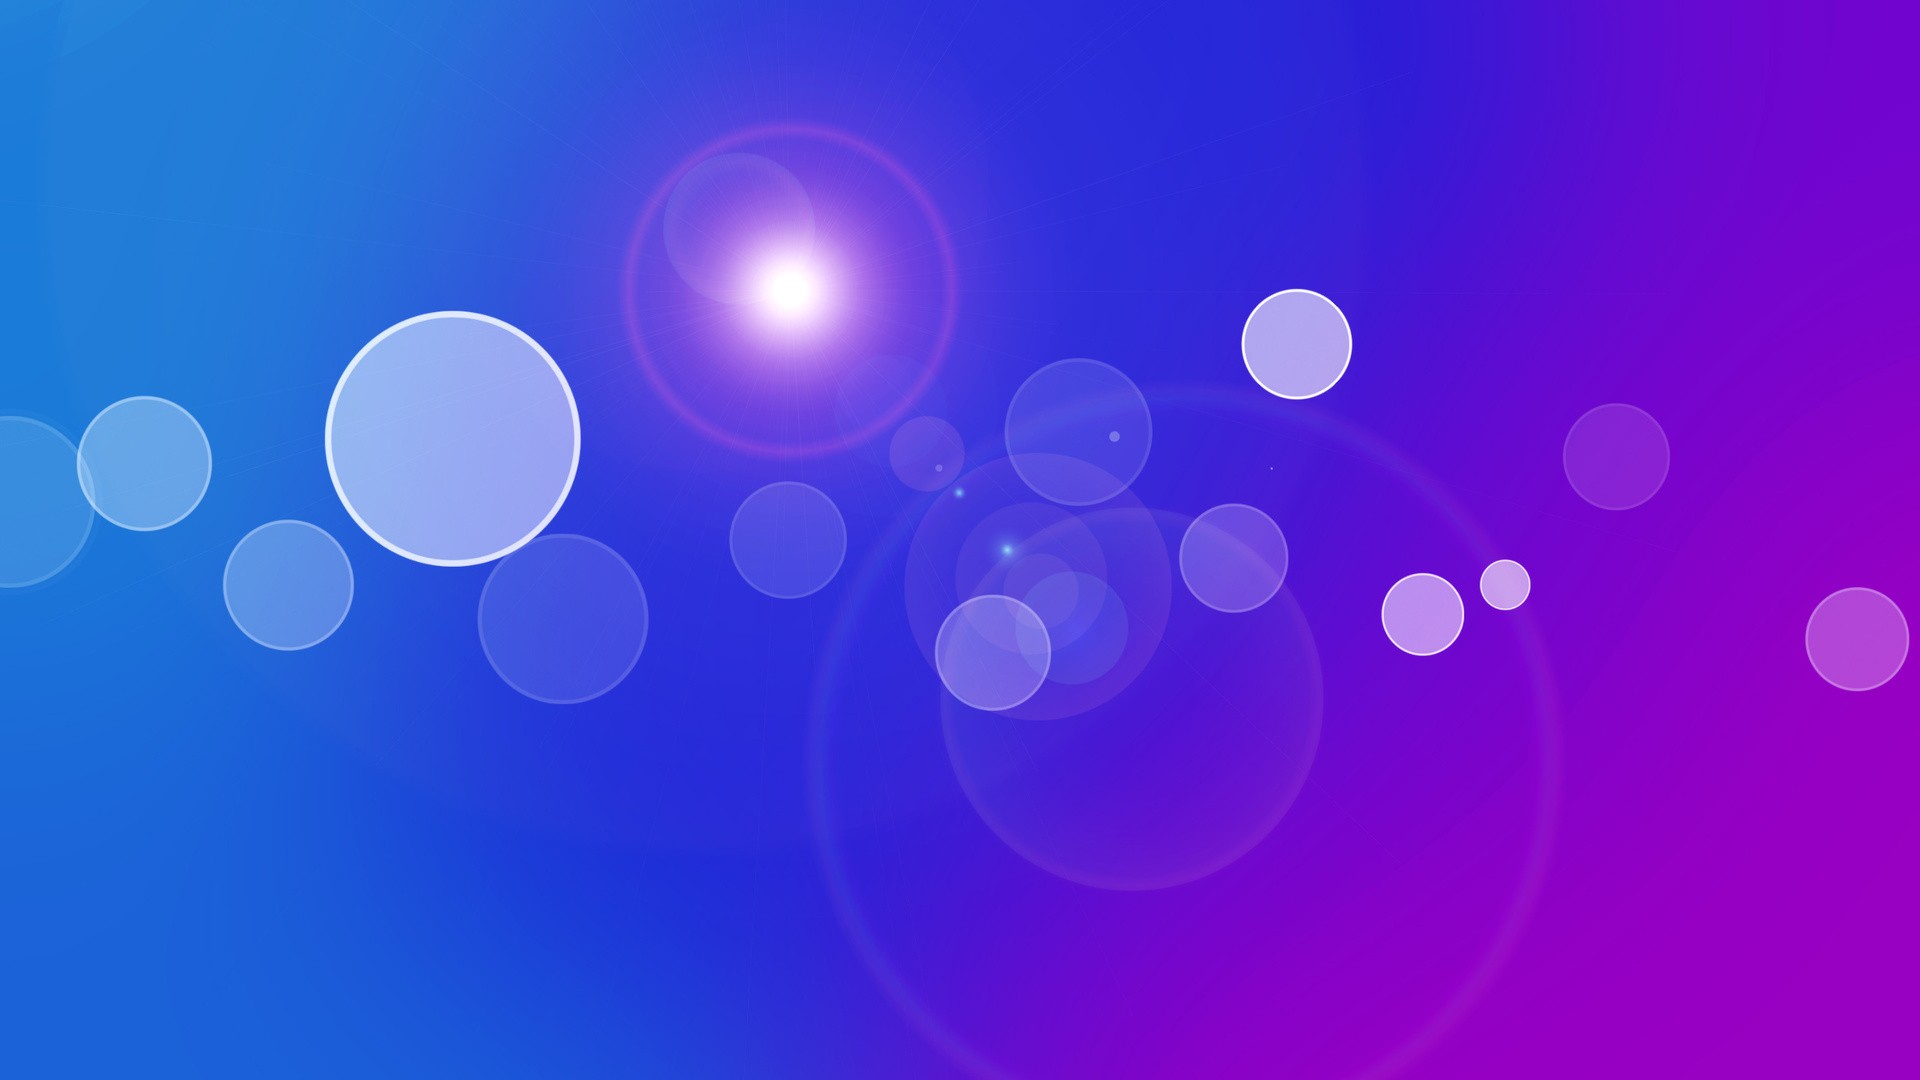 abstract blue purple circles gradient colors wallpaper background 1920x1080